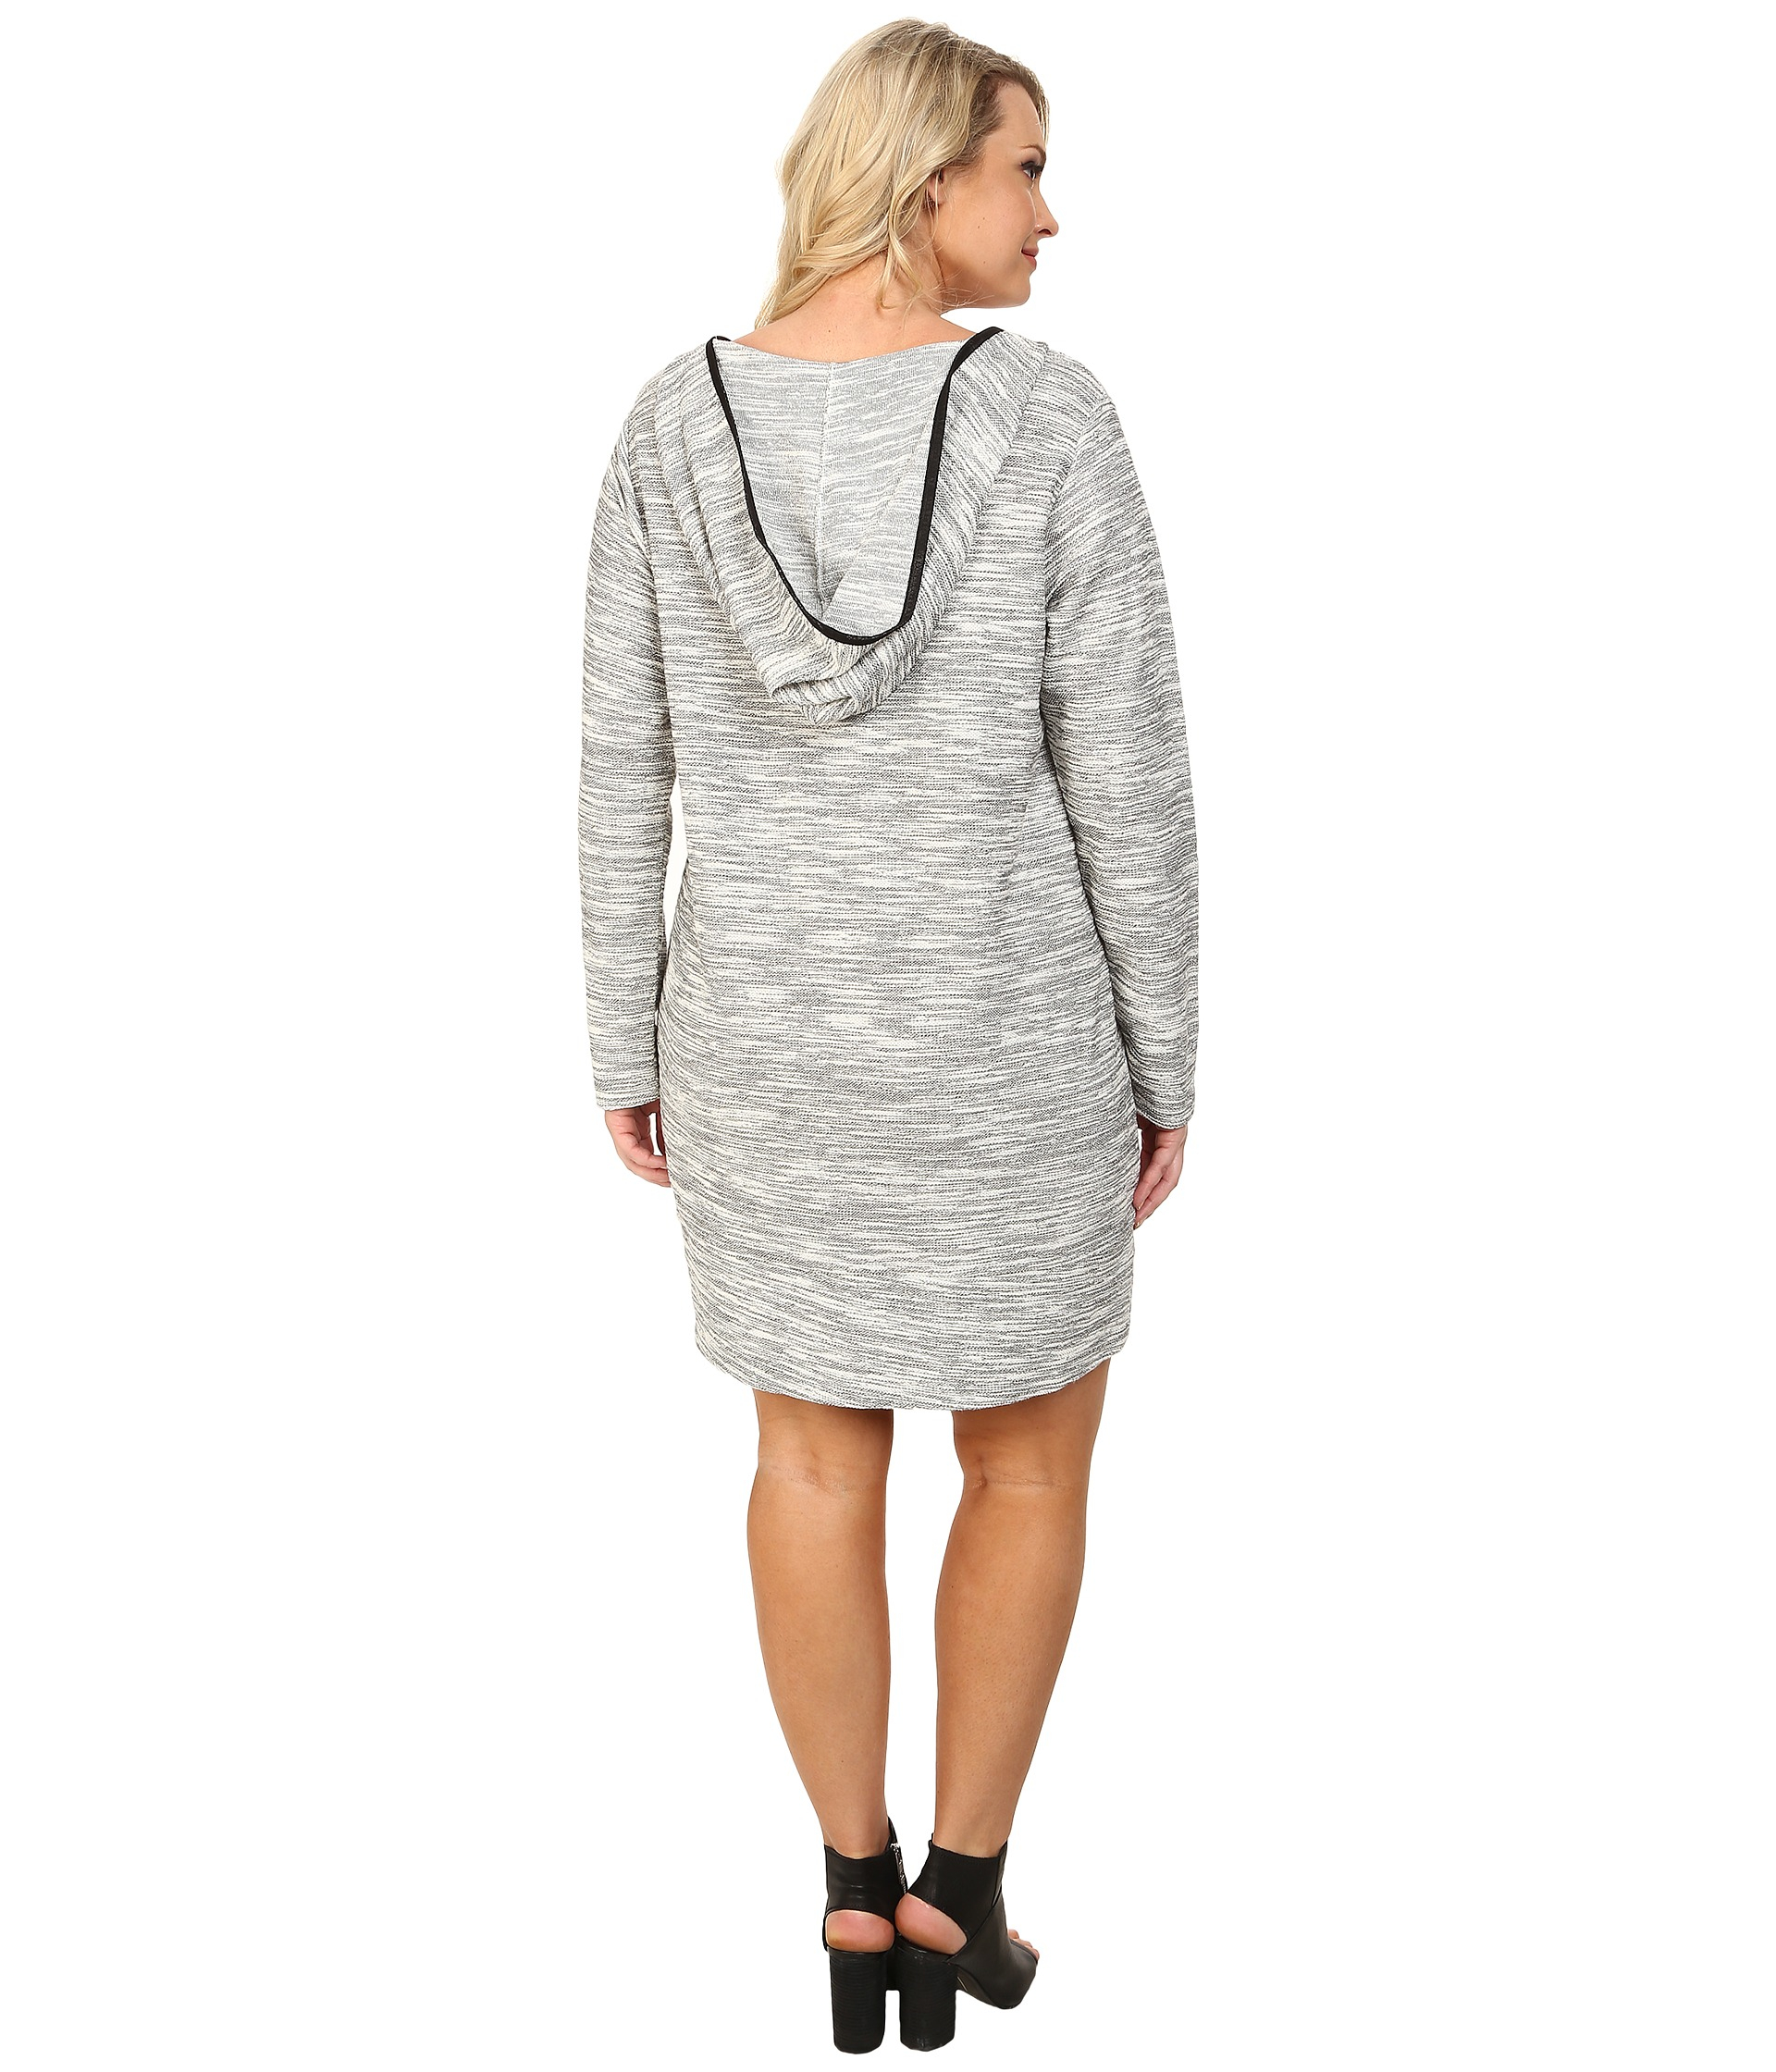 Dkny Plus Size Textured Hoodie Dress in Gray | Lyst